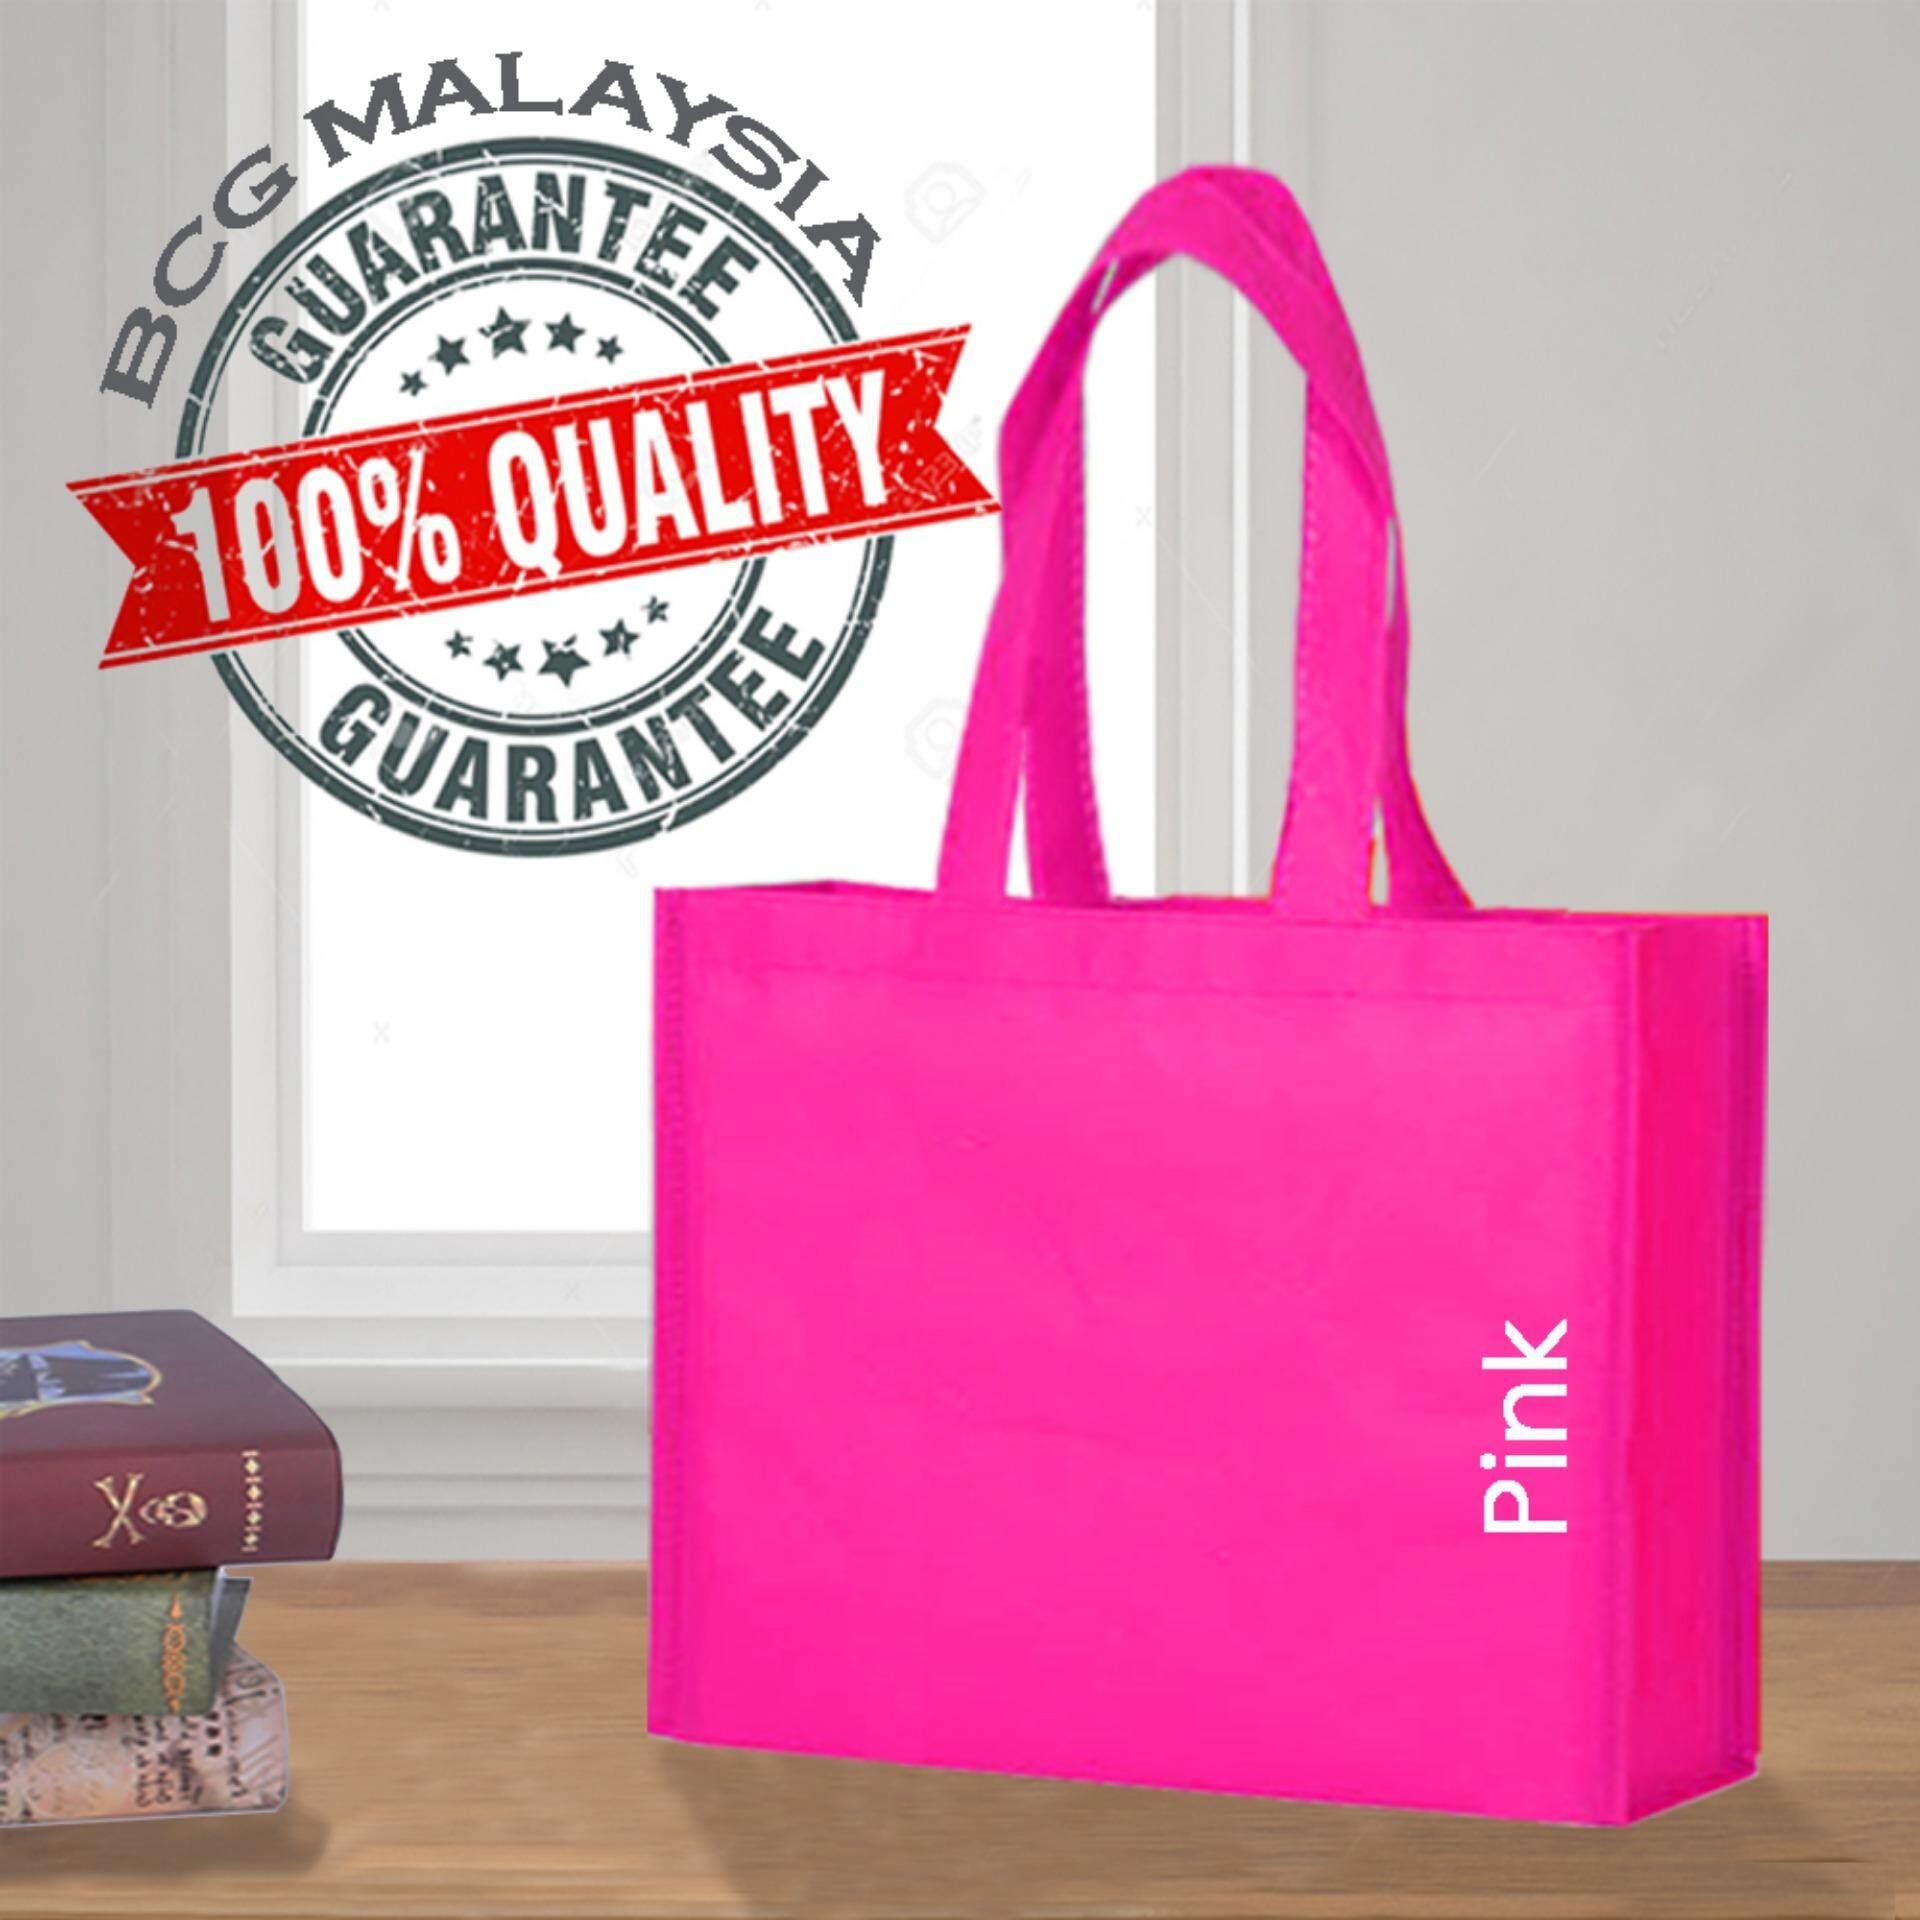 [Ready Stock] BCG Malaysia A3 Pink Non Woven Bag Recycle Bag 100% Quality Assured